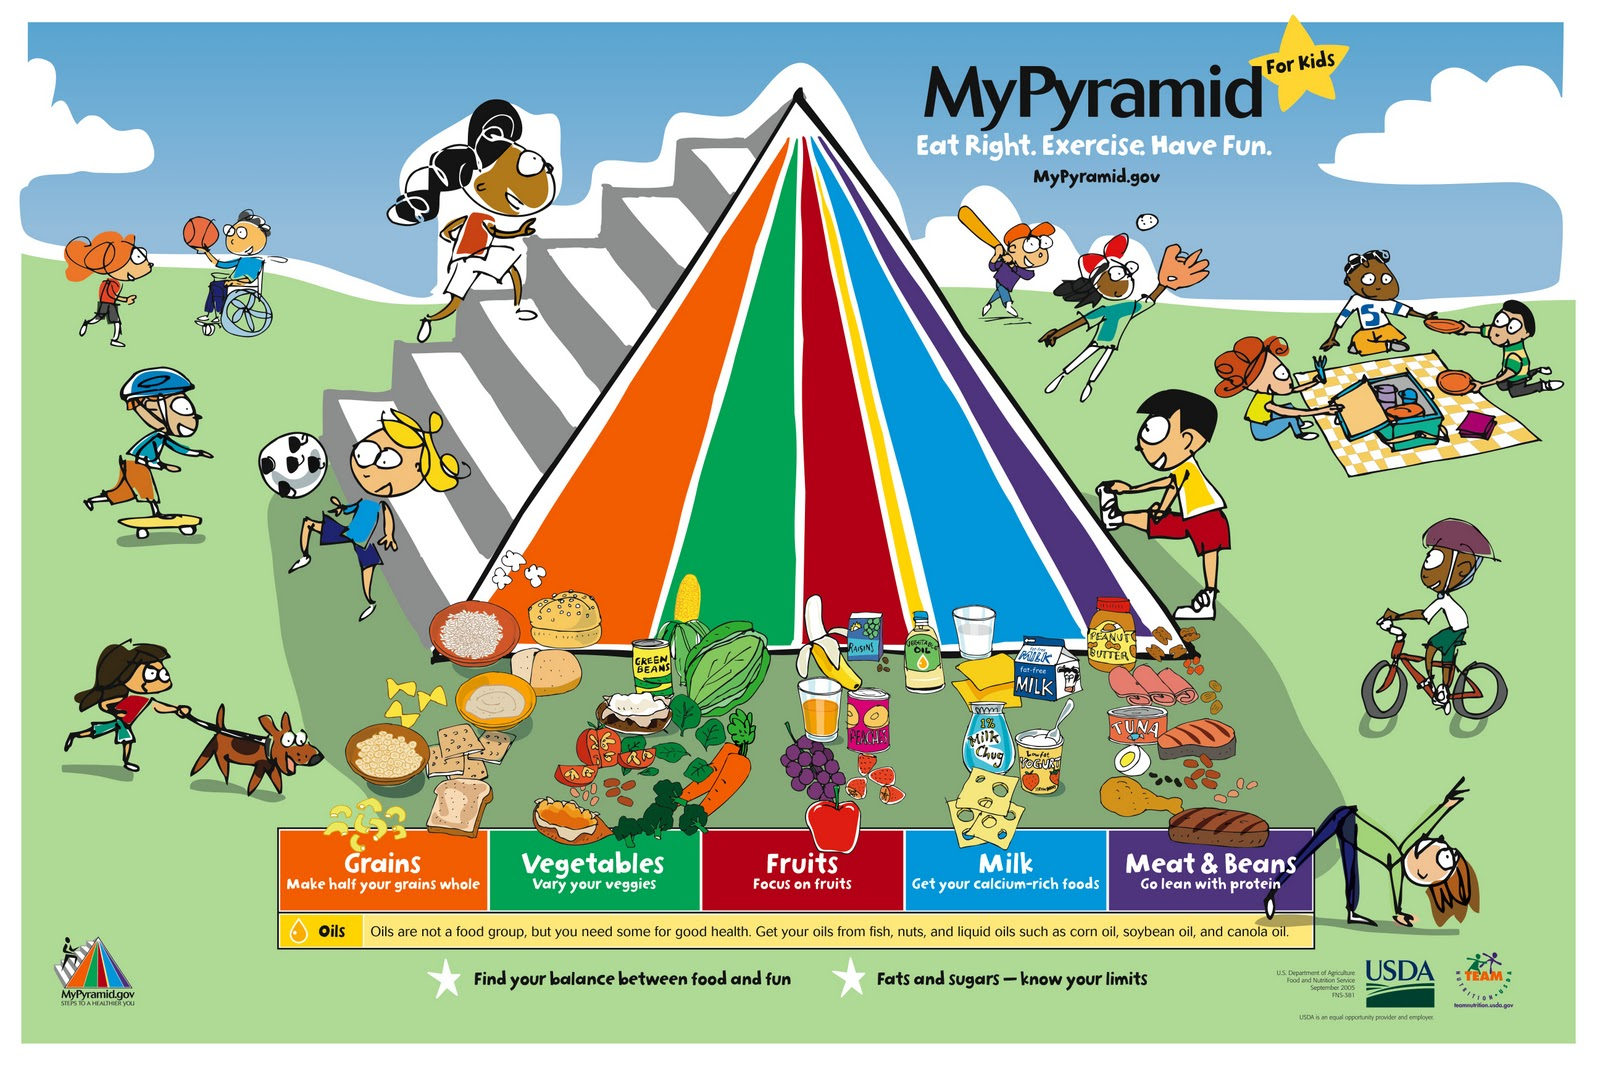 My Pyramid Eat Right Exercise Have Fun